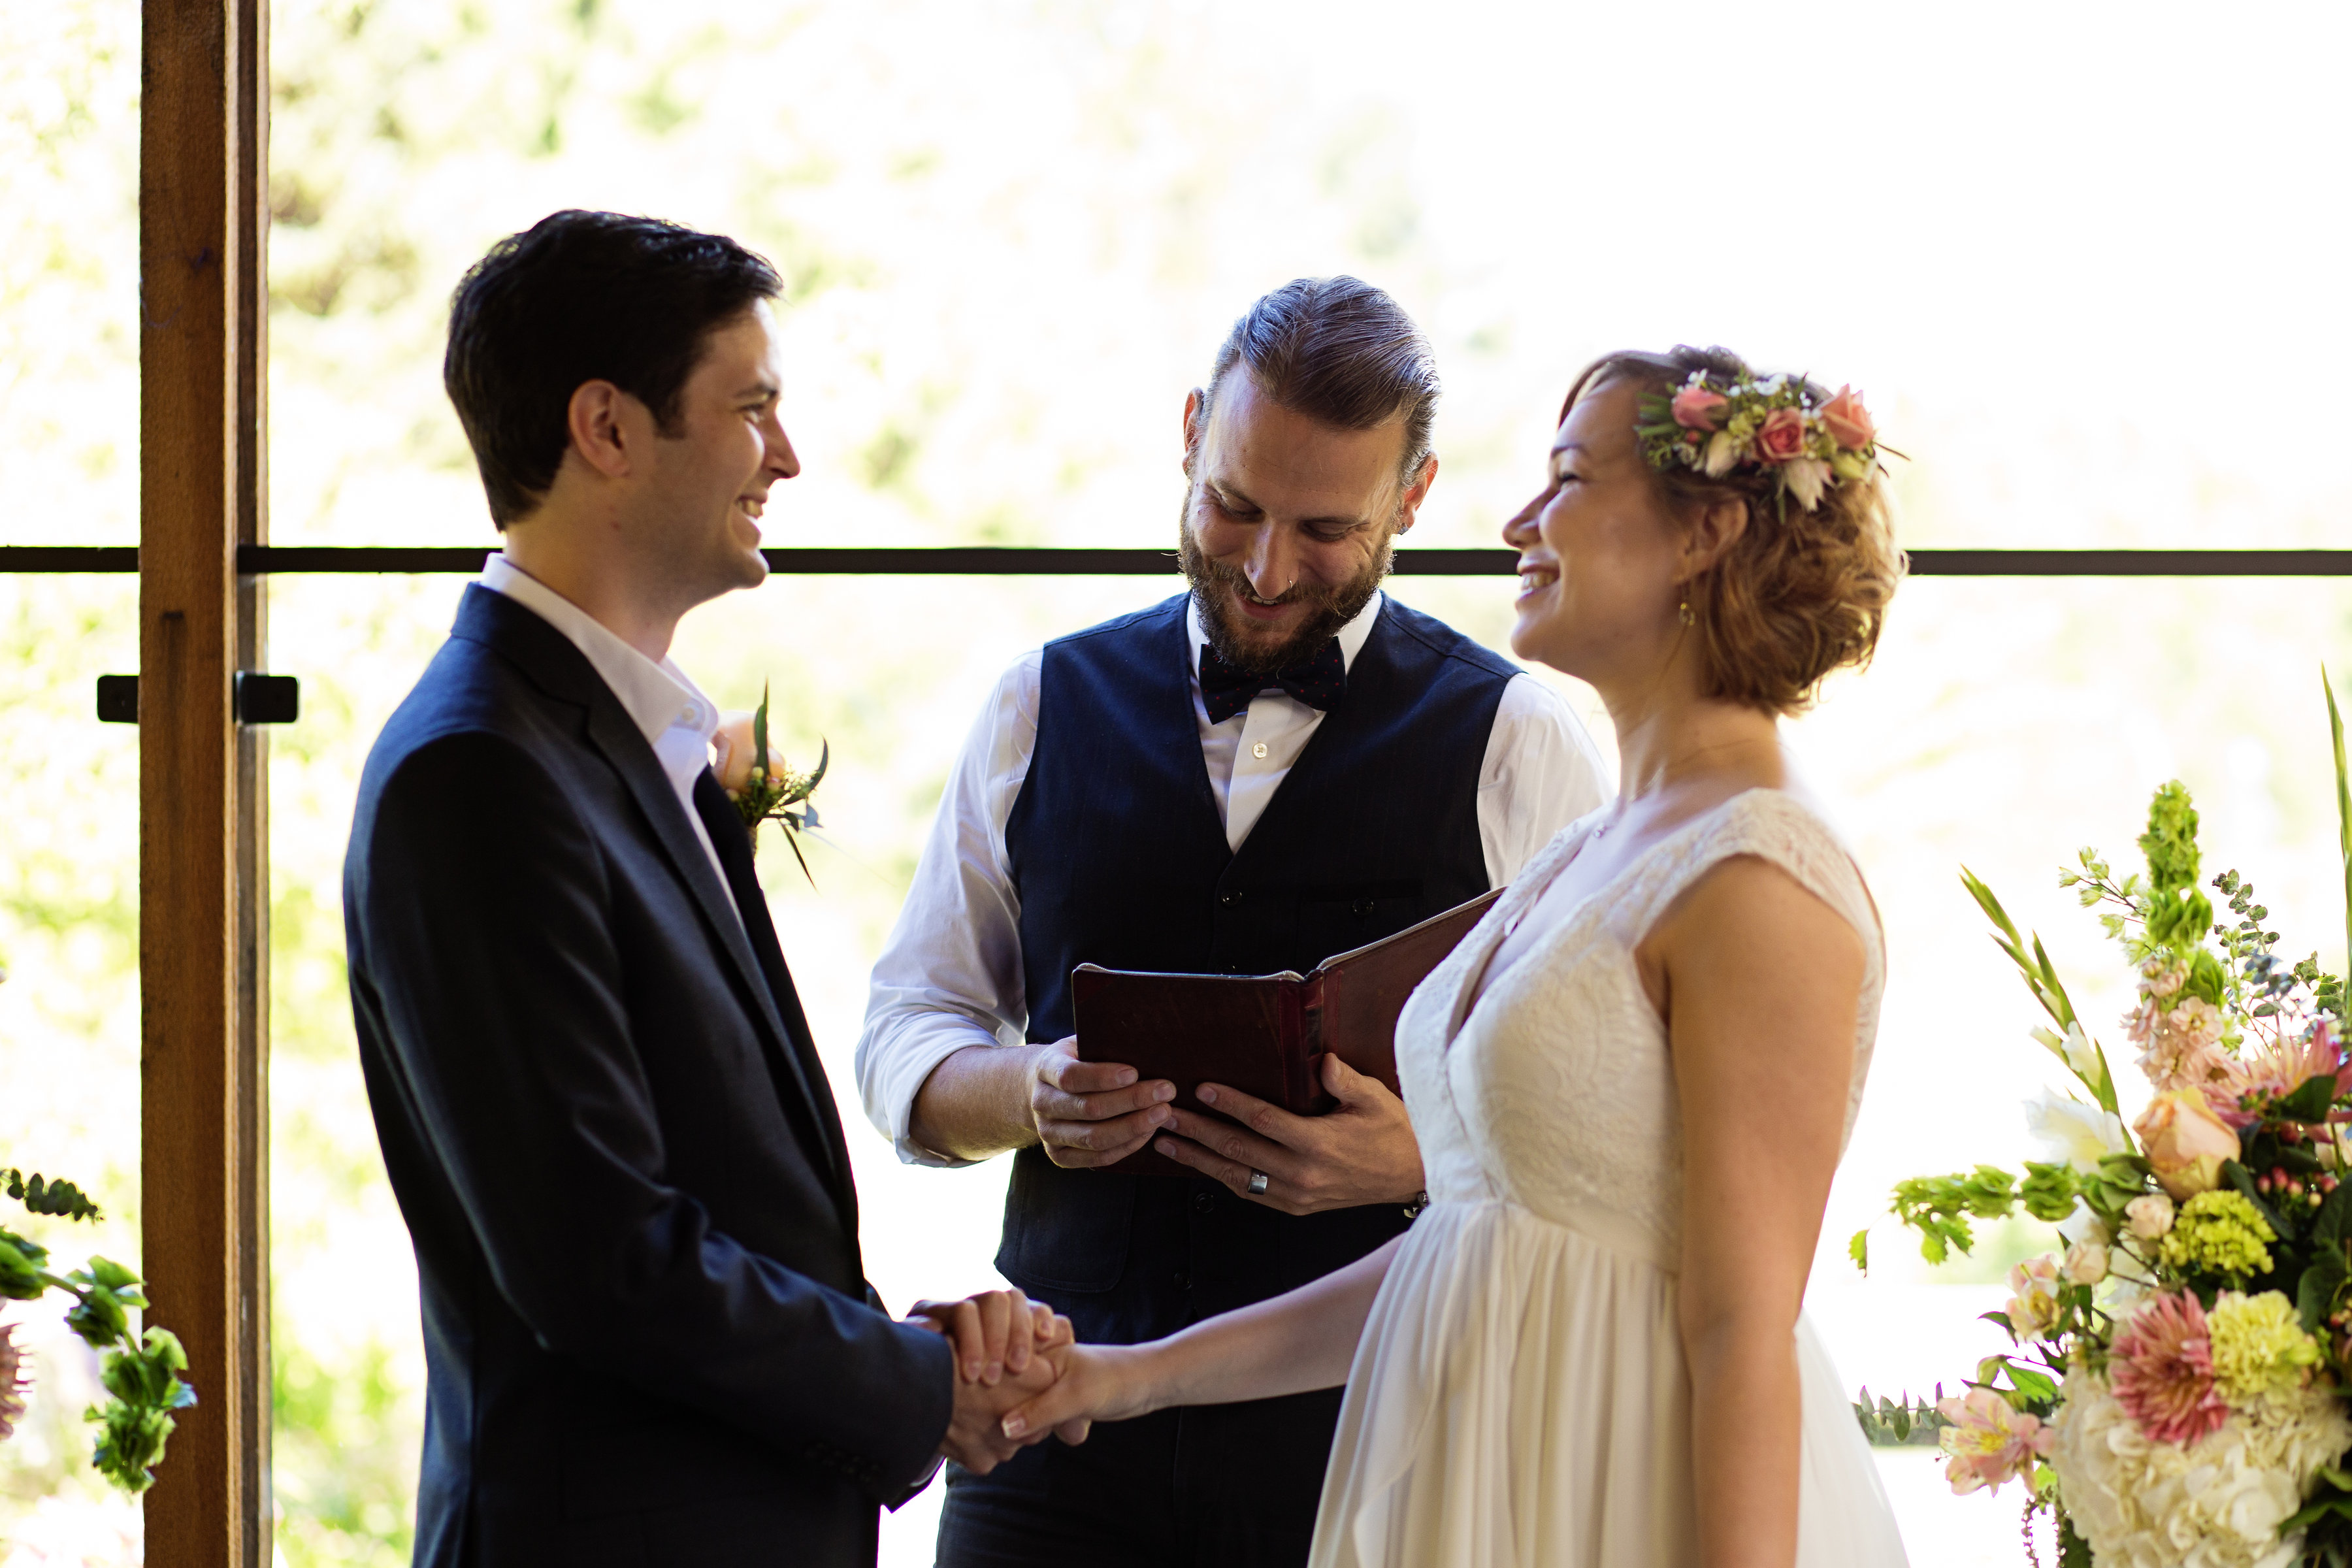 10 Readings You Should Consider For Your Wedding Ceremony